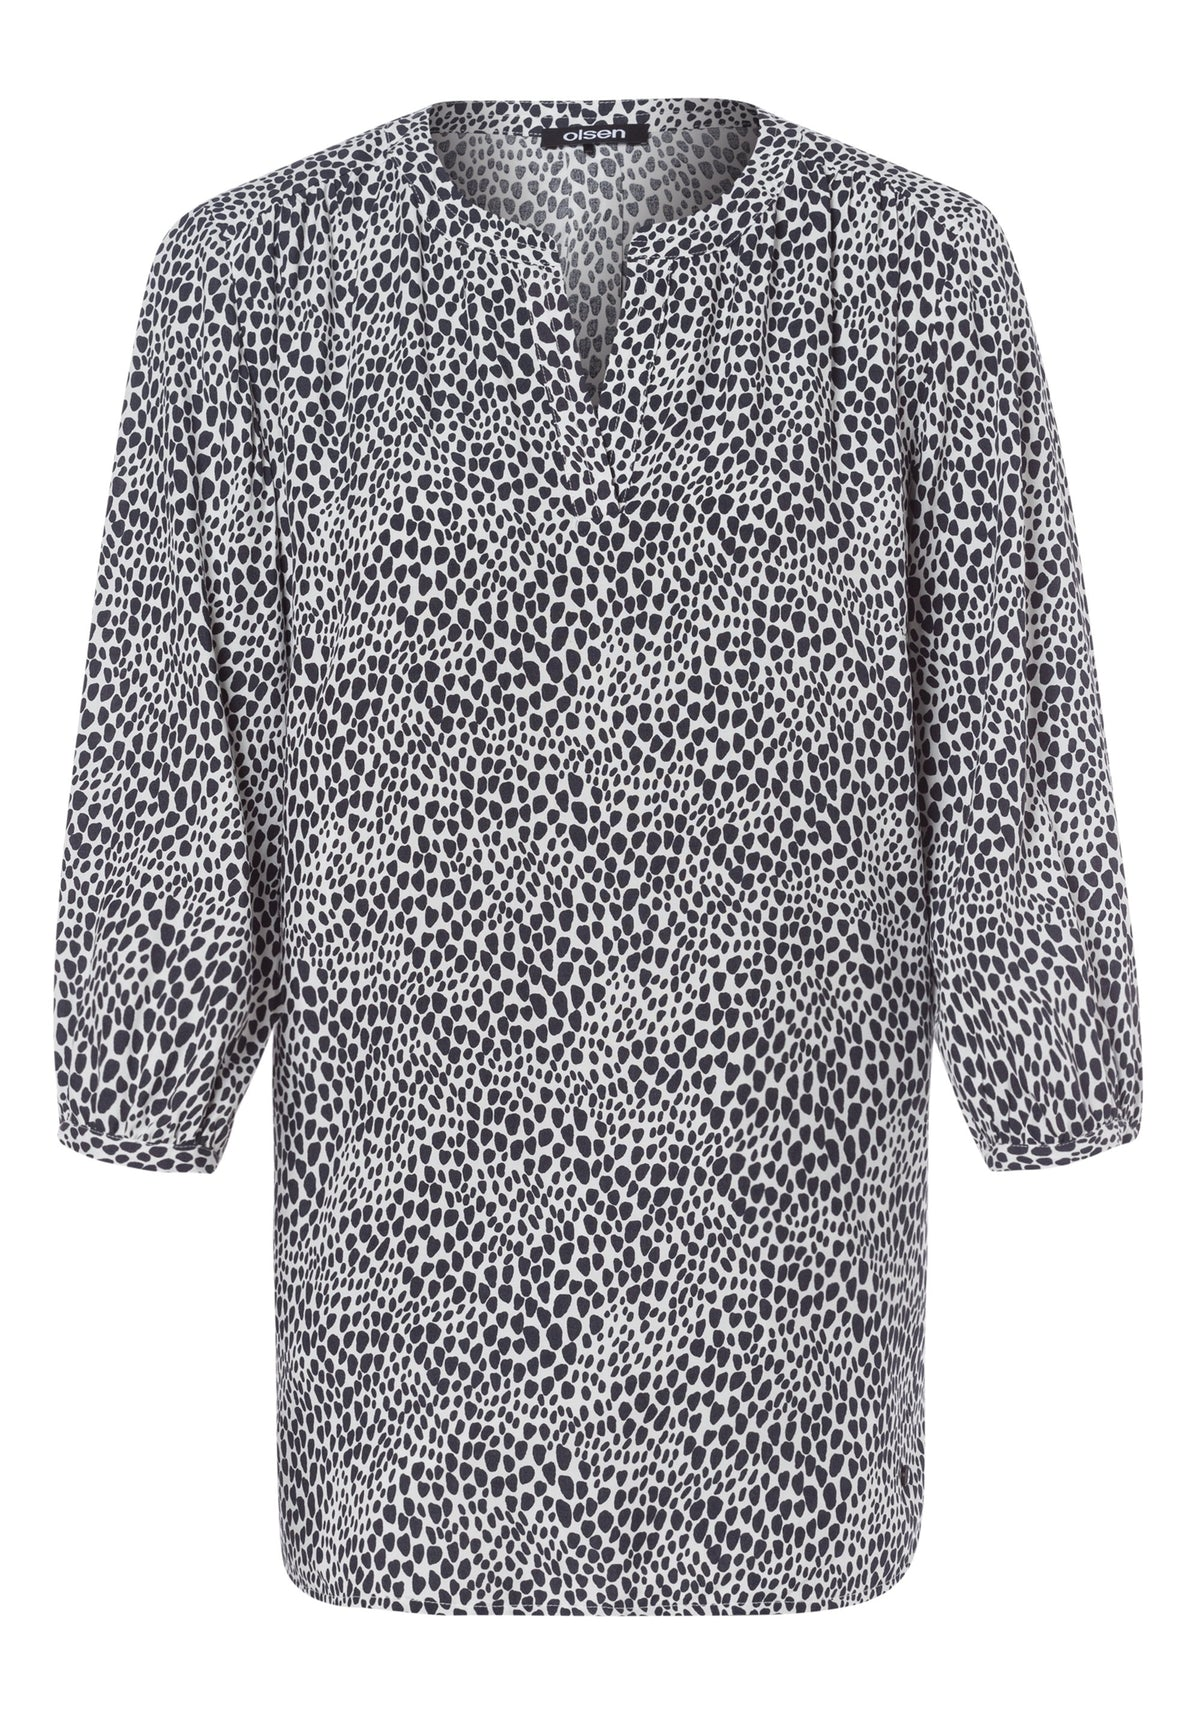 3/4 Sleeve Tunic Neck Allover Print Blouse